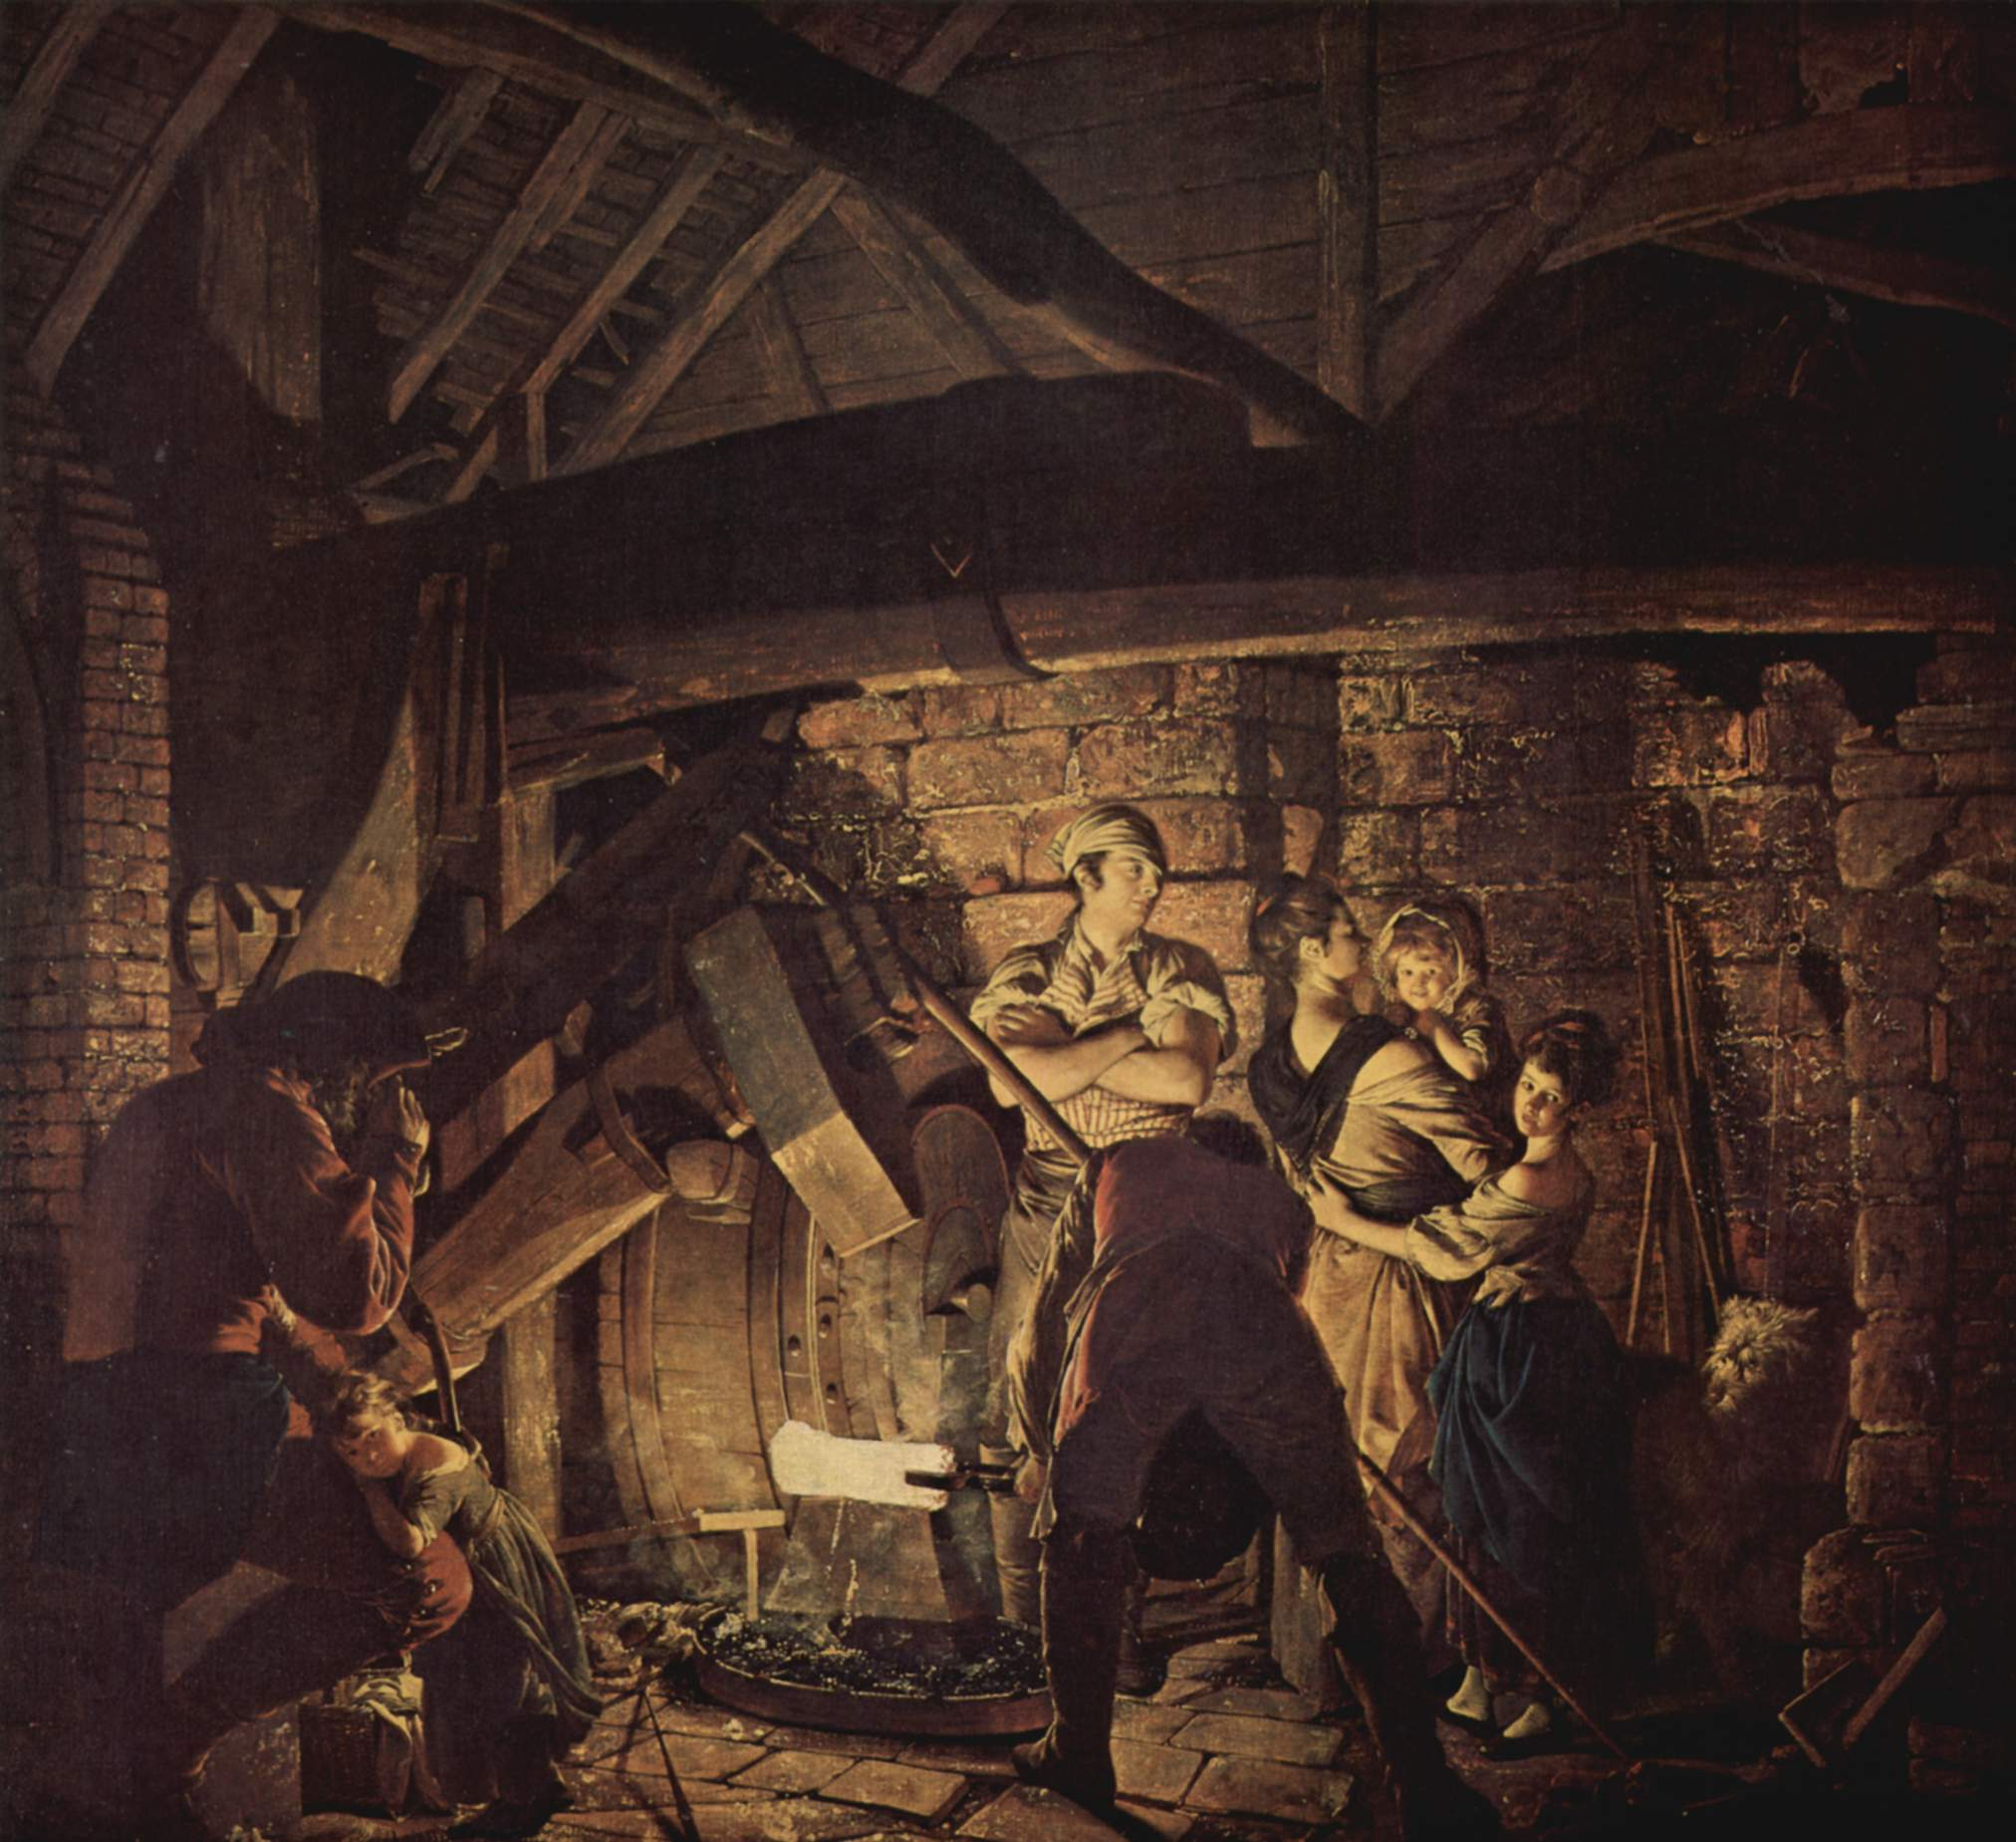 http://upload.wikimedia.org/wikipedia/commons/9/9c/Joseph_Wright_003.jpg